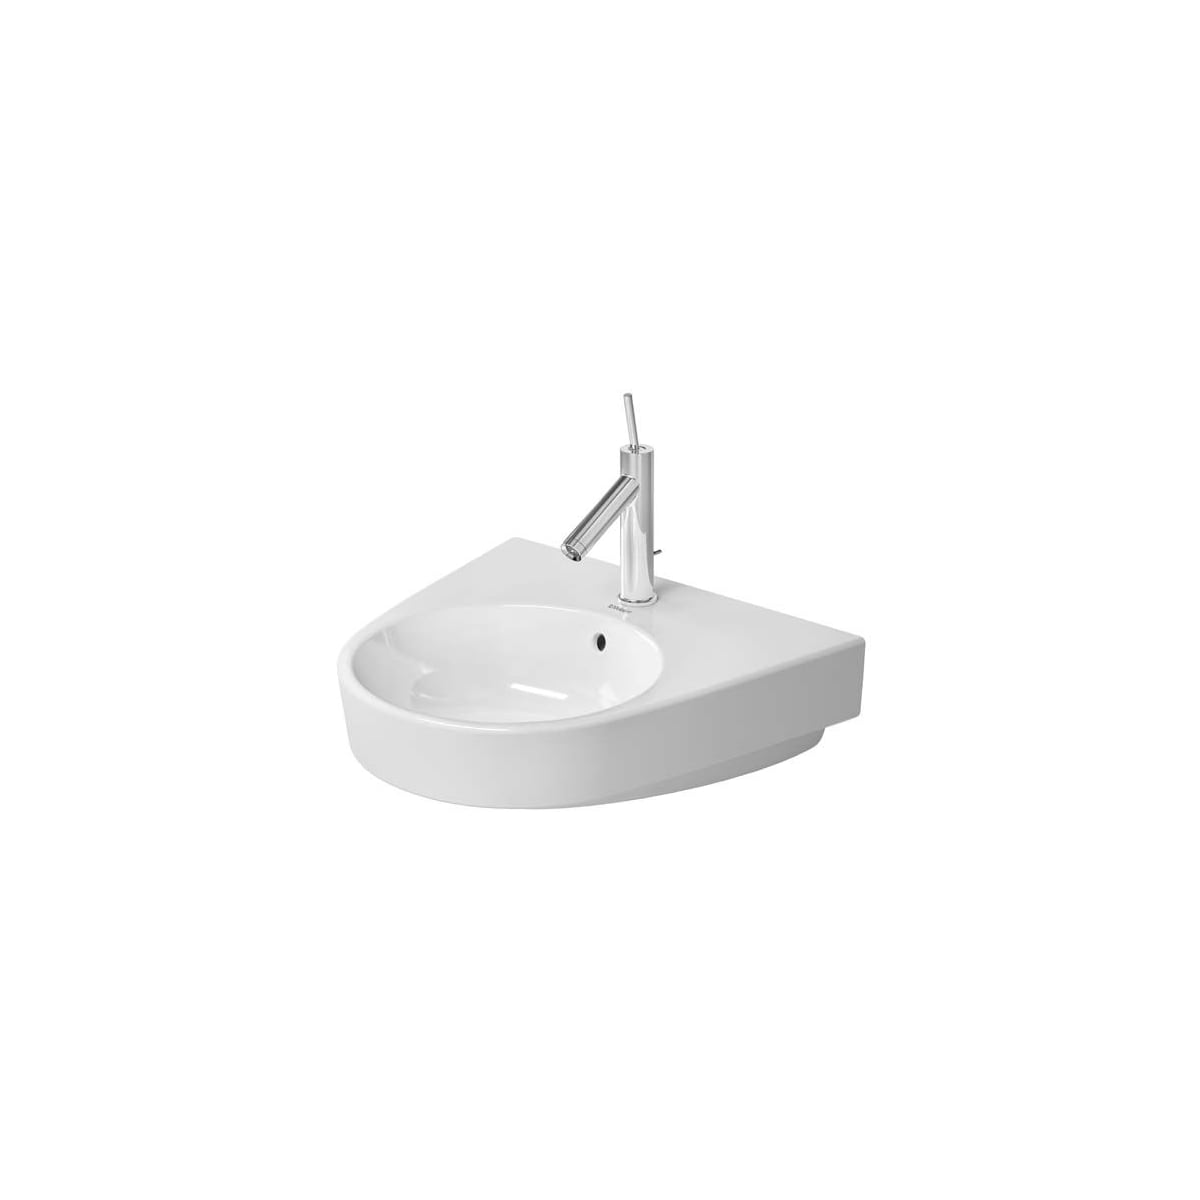 Duravit 2323550030 White Glazed Underside Starck 2 21 5 8 Specialty Ceramic Wall Mounted Bathroom Sink With Overflow And 3 Faucet Holes At 8 Centers Faucet Com